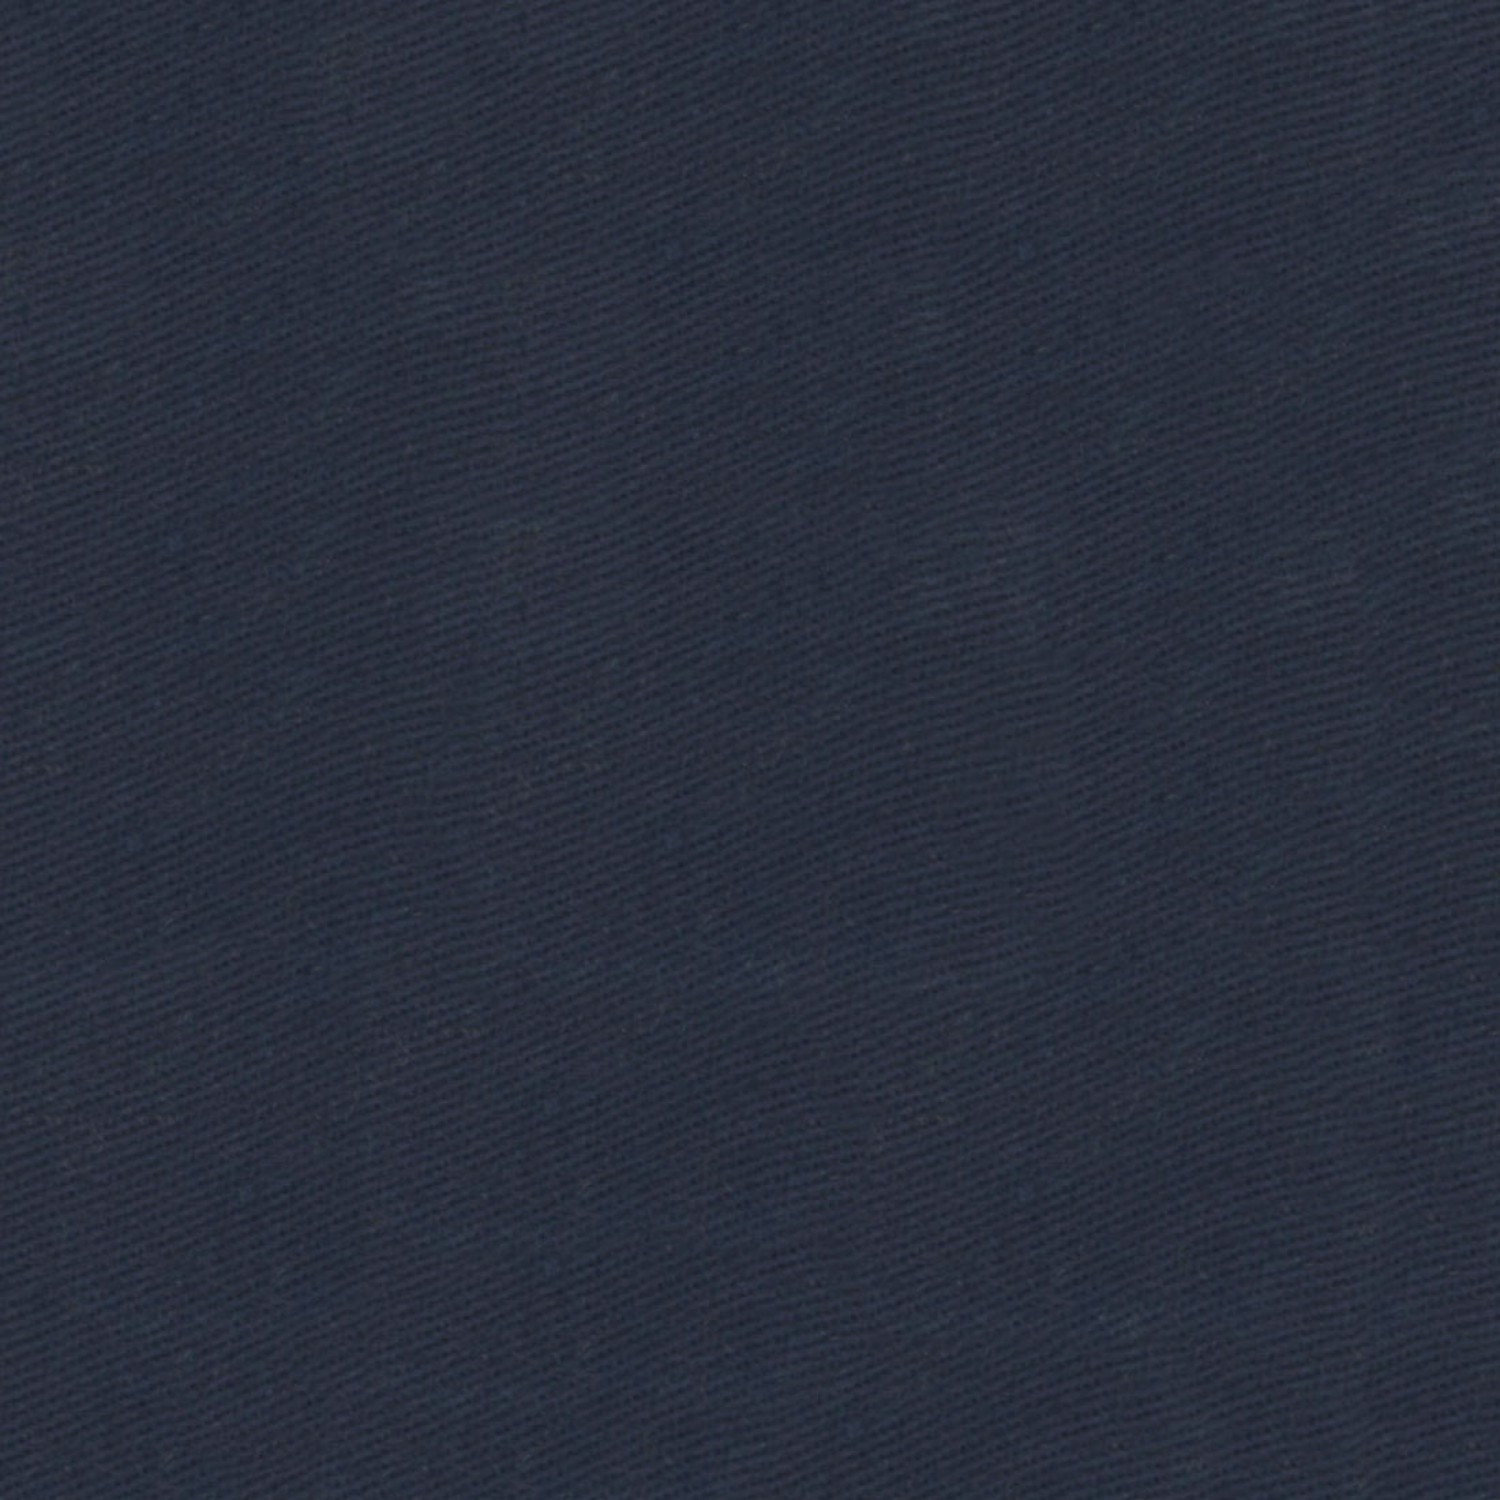 "Milestone Twill Midnight Navy Fabric 7oz - 60"" Wide x Per Yard"